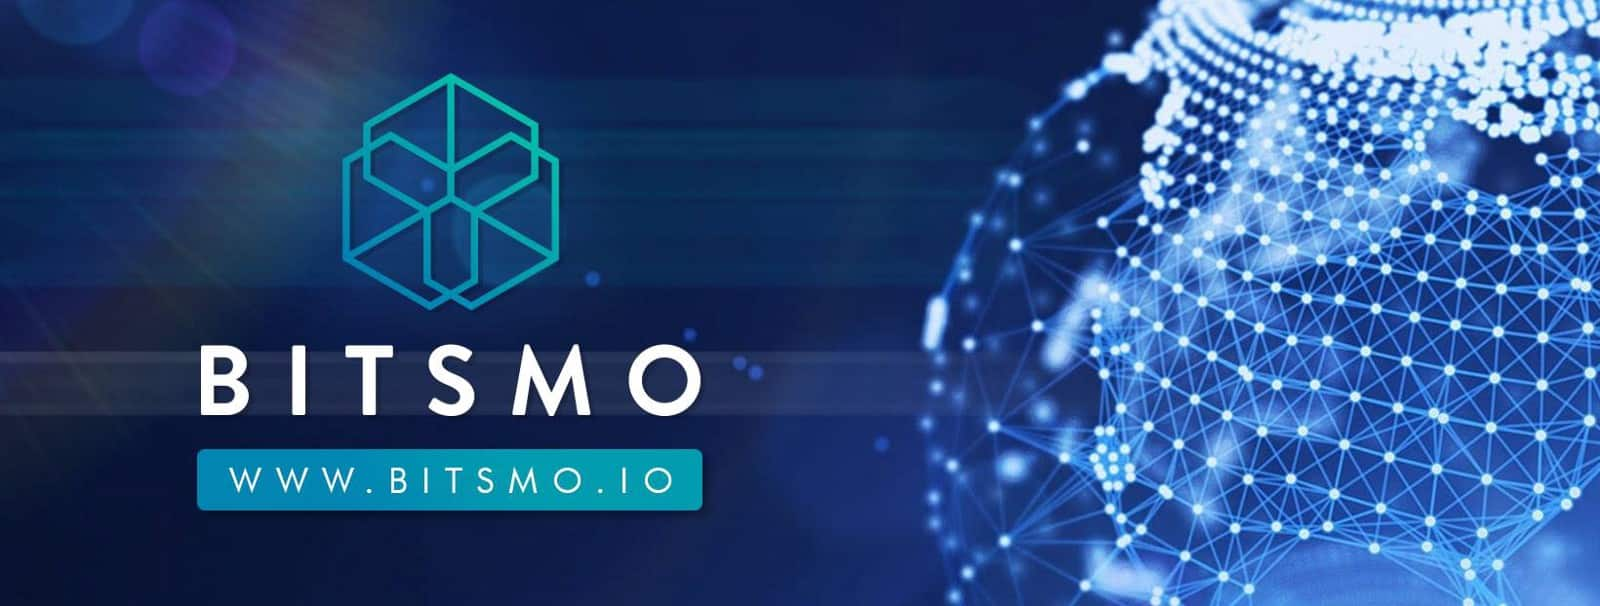 BITSMO Launches Its New Exchange Platform